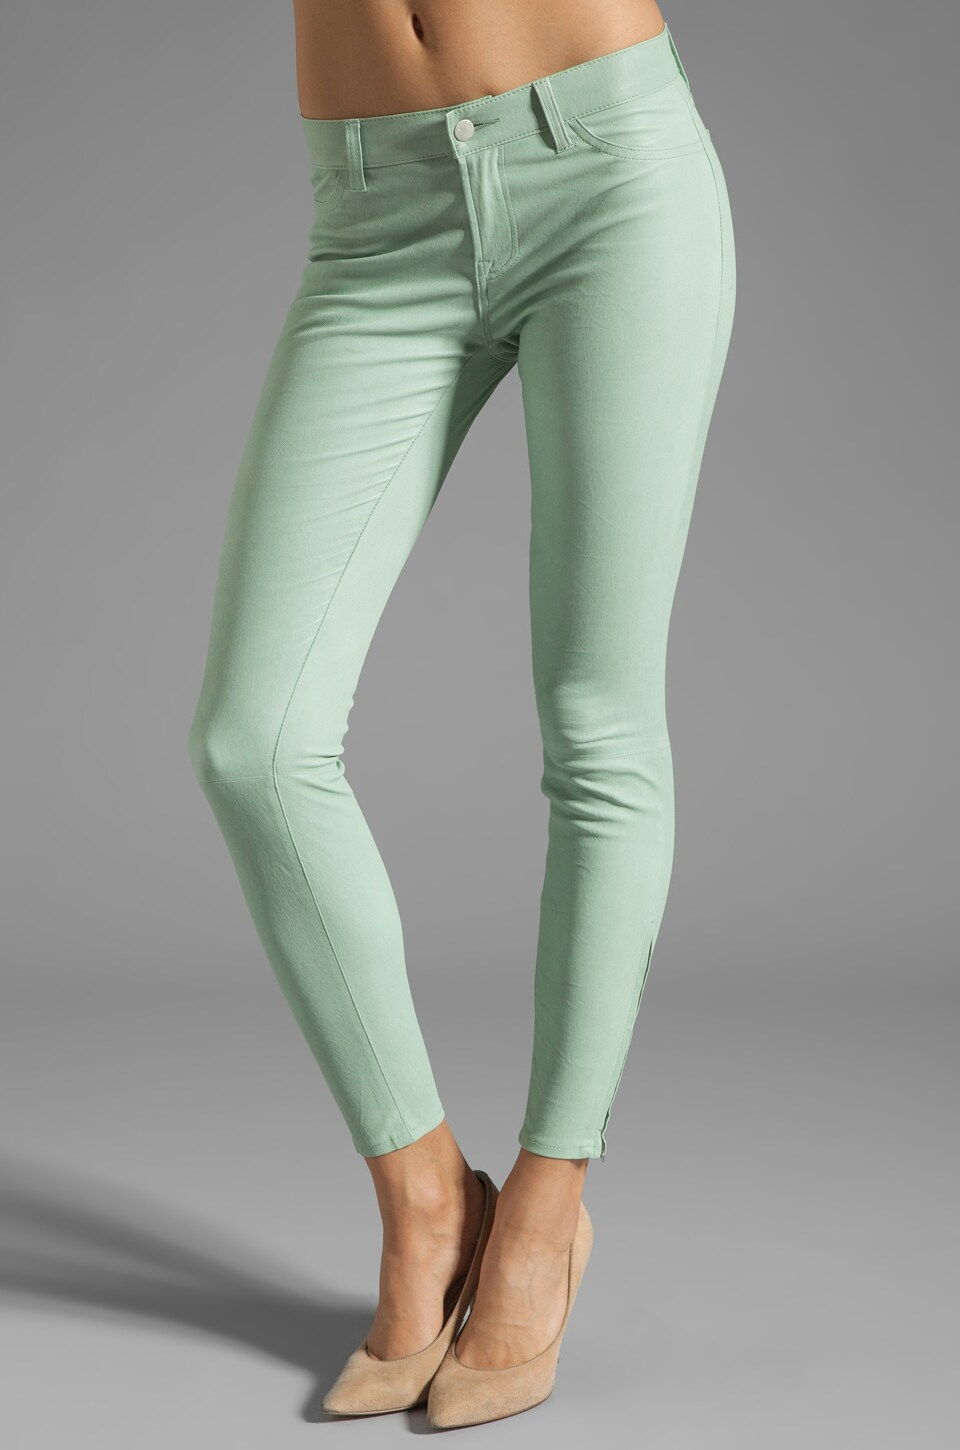 J Brand Super Skinny Leather in Mint